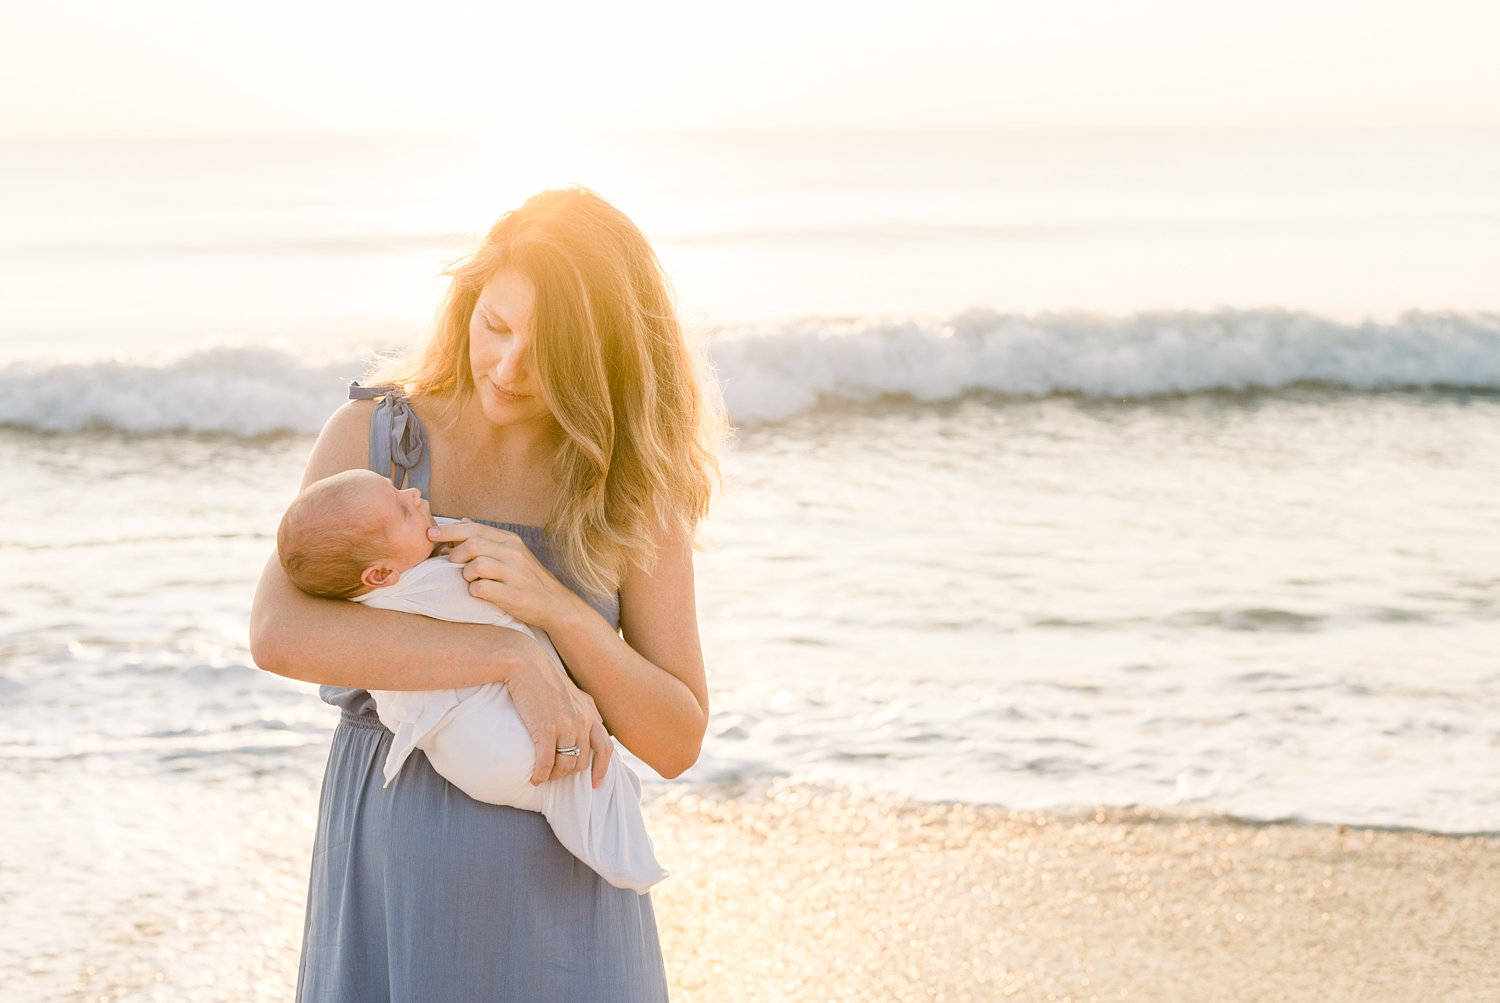 mom wearing a cornflower blue dress, she is holding her newborn baby, the sun is rising in the background